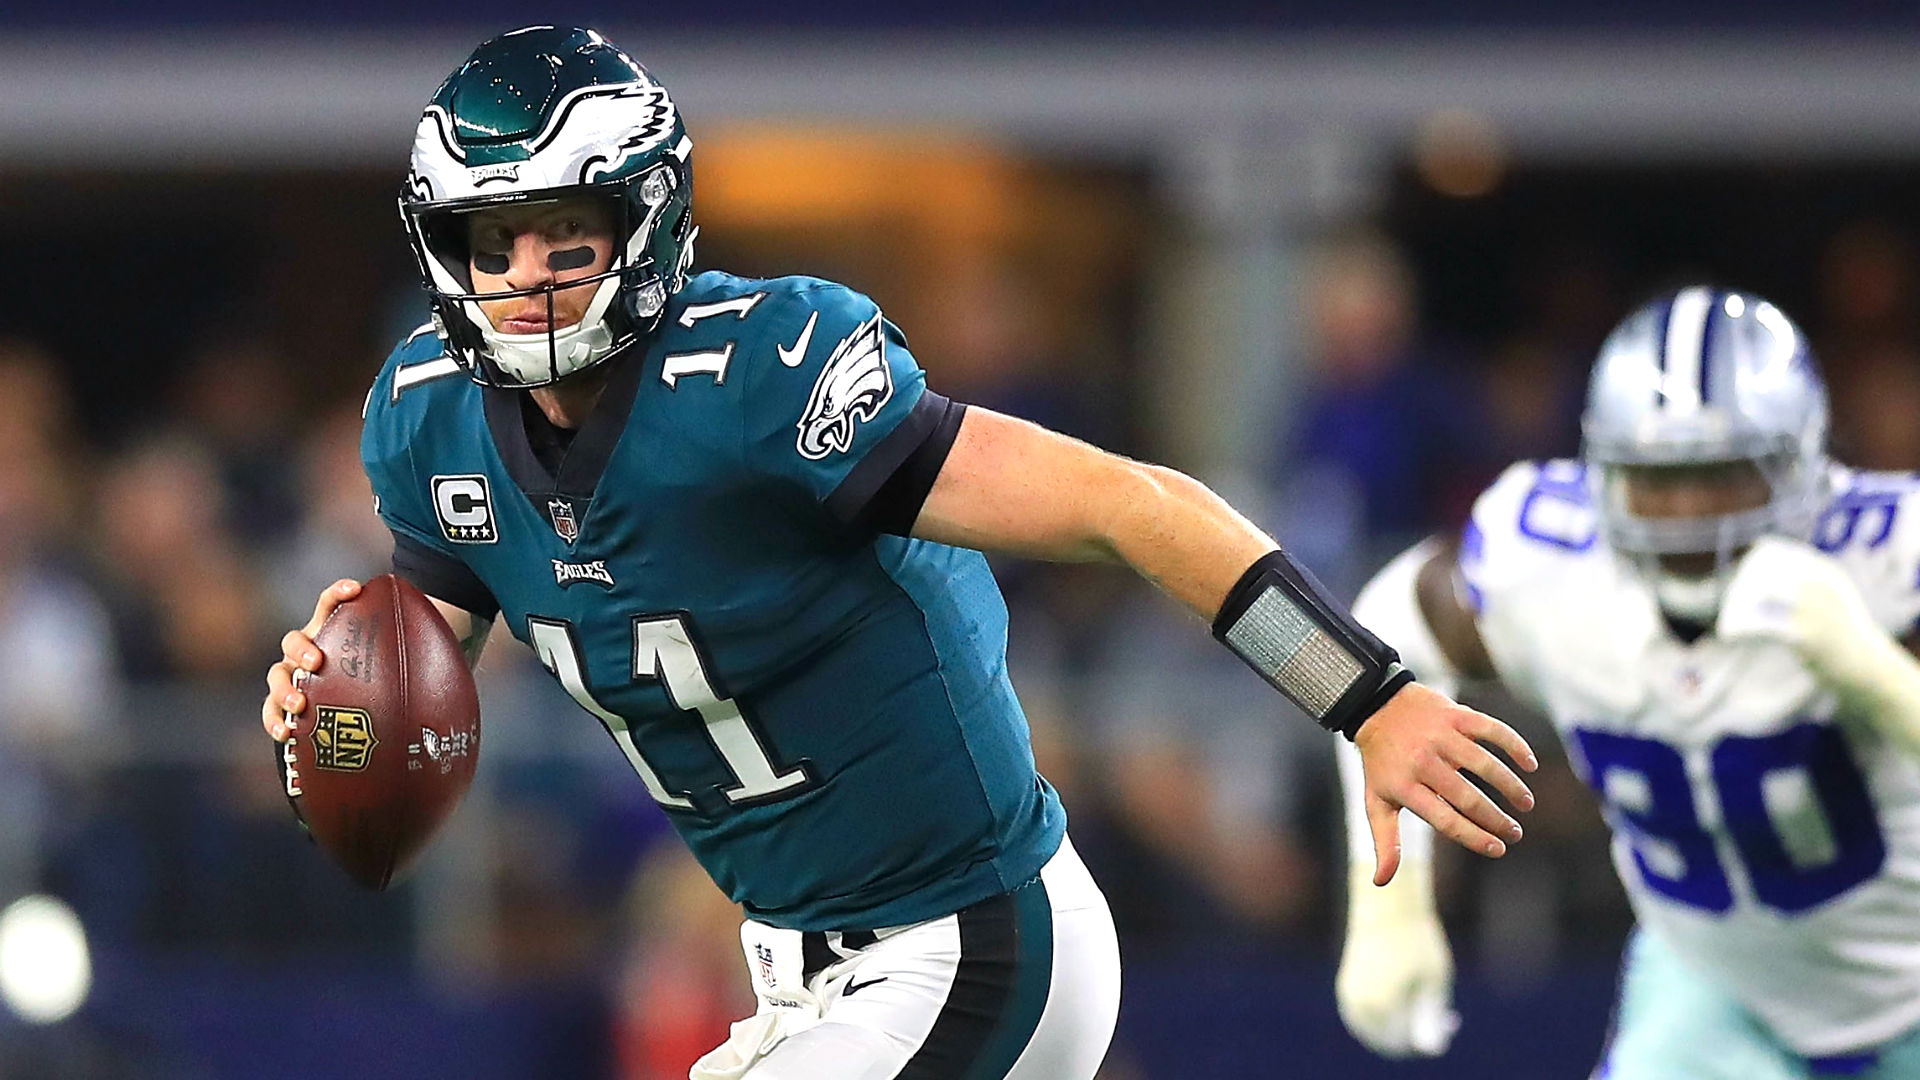 Eagles schedule 2020: Dates & times for all 16 games, strength of schedule, final record prediction 1